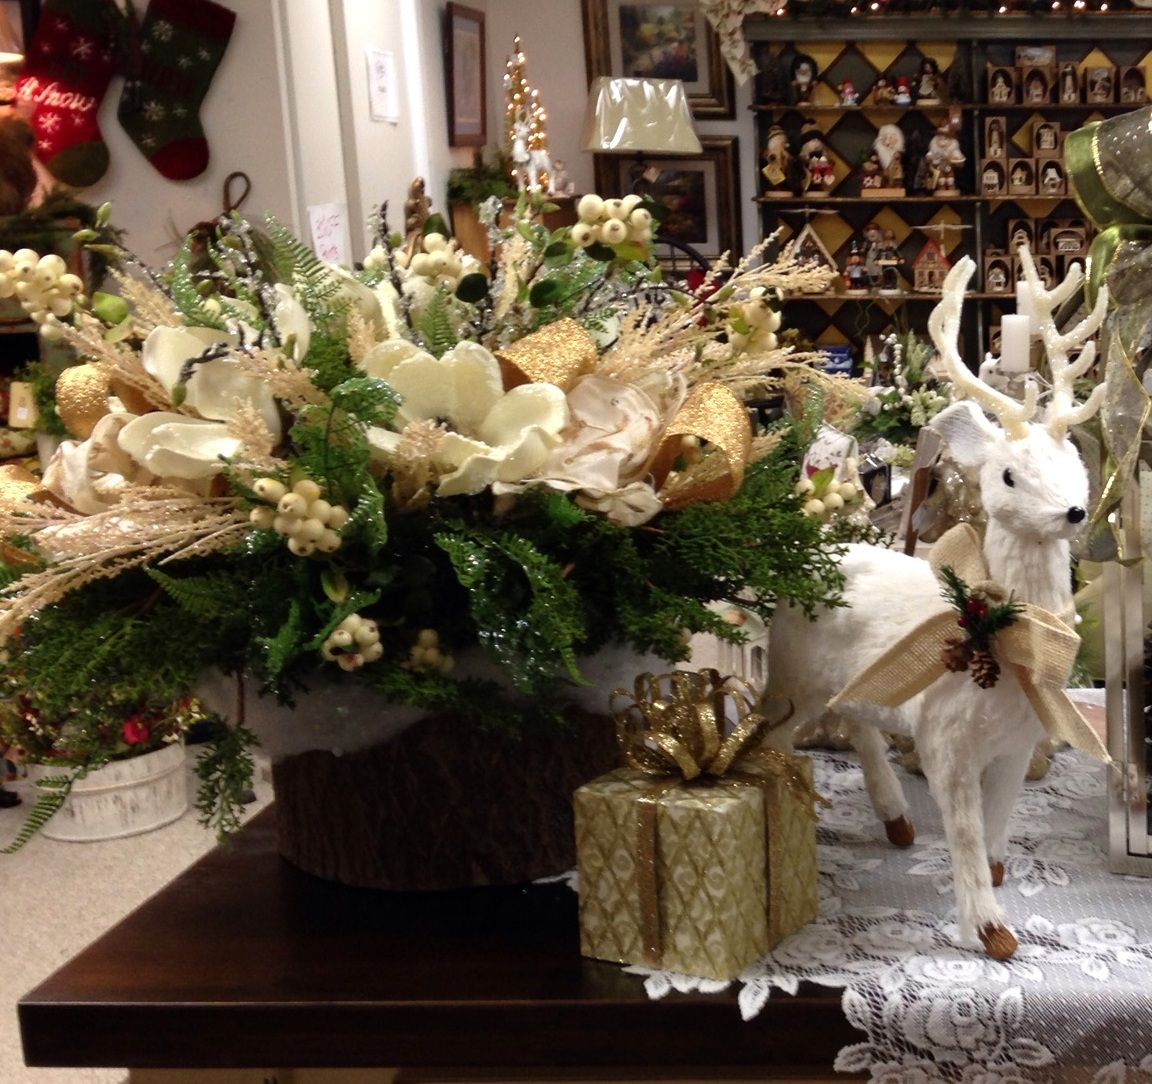 Gold tones adds holiday glamour to this woodland scene.